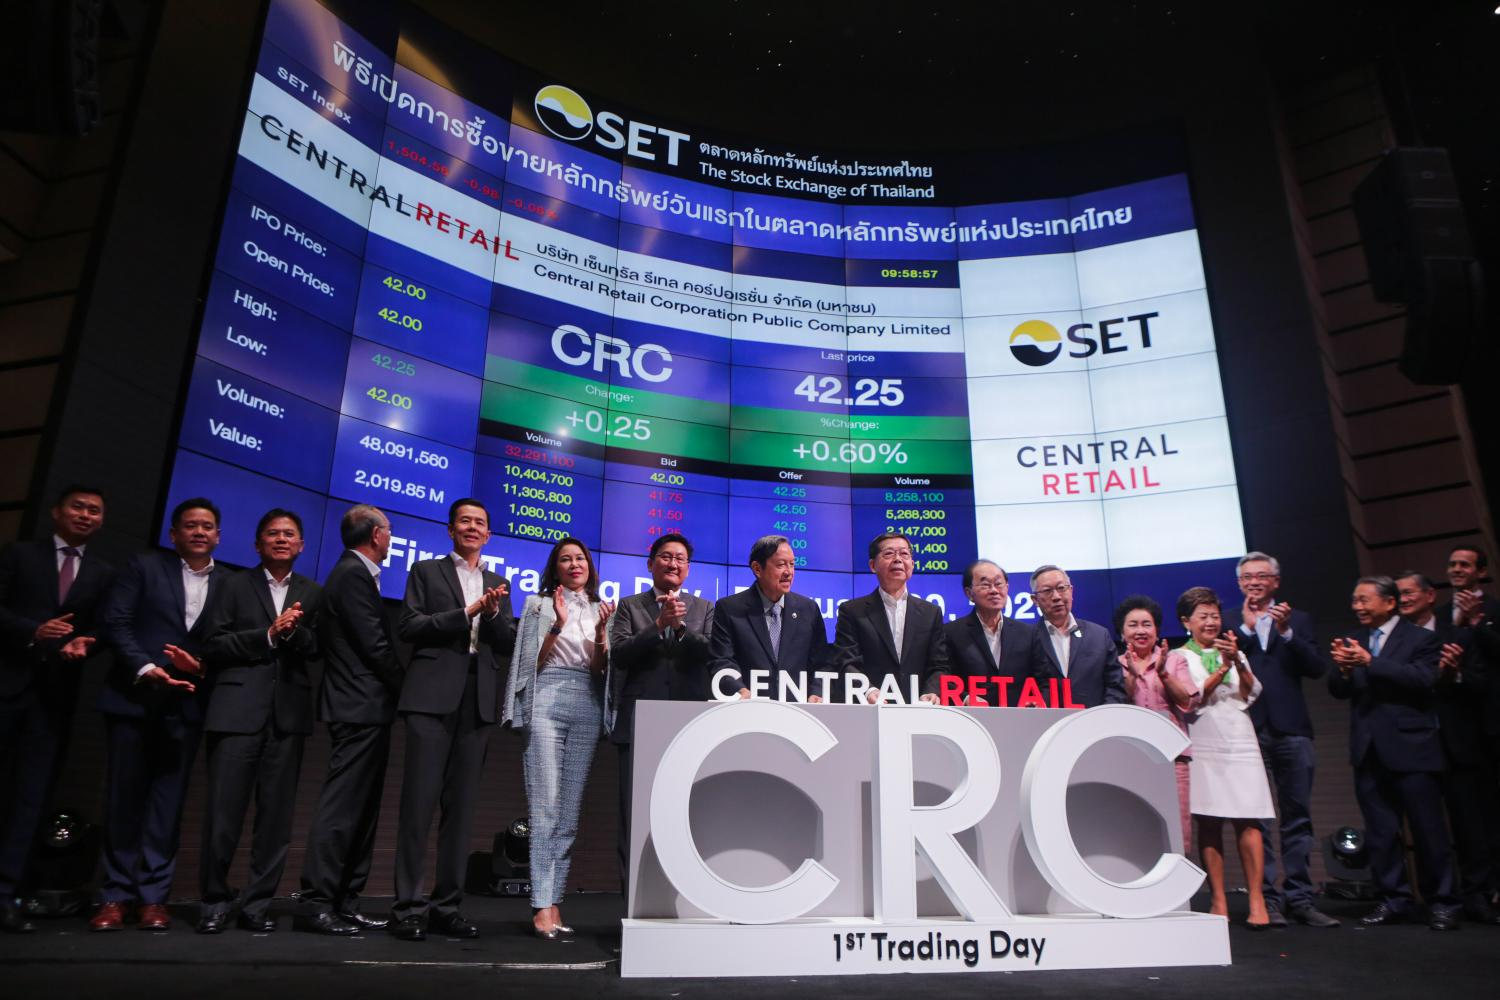 Central Retail Corporation Plc (CRC) board members and executives celebrate the first trading day of the CRC IPO on Thursday. They include, from sixth left, Stock Exchange of Thailand president Pakorn Peetathawatchai; Chaiwat Wibulsawat, chairman of the Stock Exchange of Thailand; Prasarn Trairatvorakul, CRC's chairman; Suthichai Chirathivat, CRC's vice chairman; and Suthikiati Chirathivat, CRC's vice chairman.photos by NATTAPOL LOVAKIJ